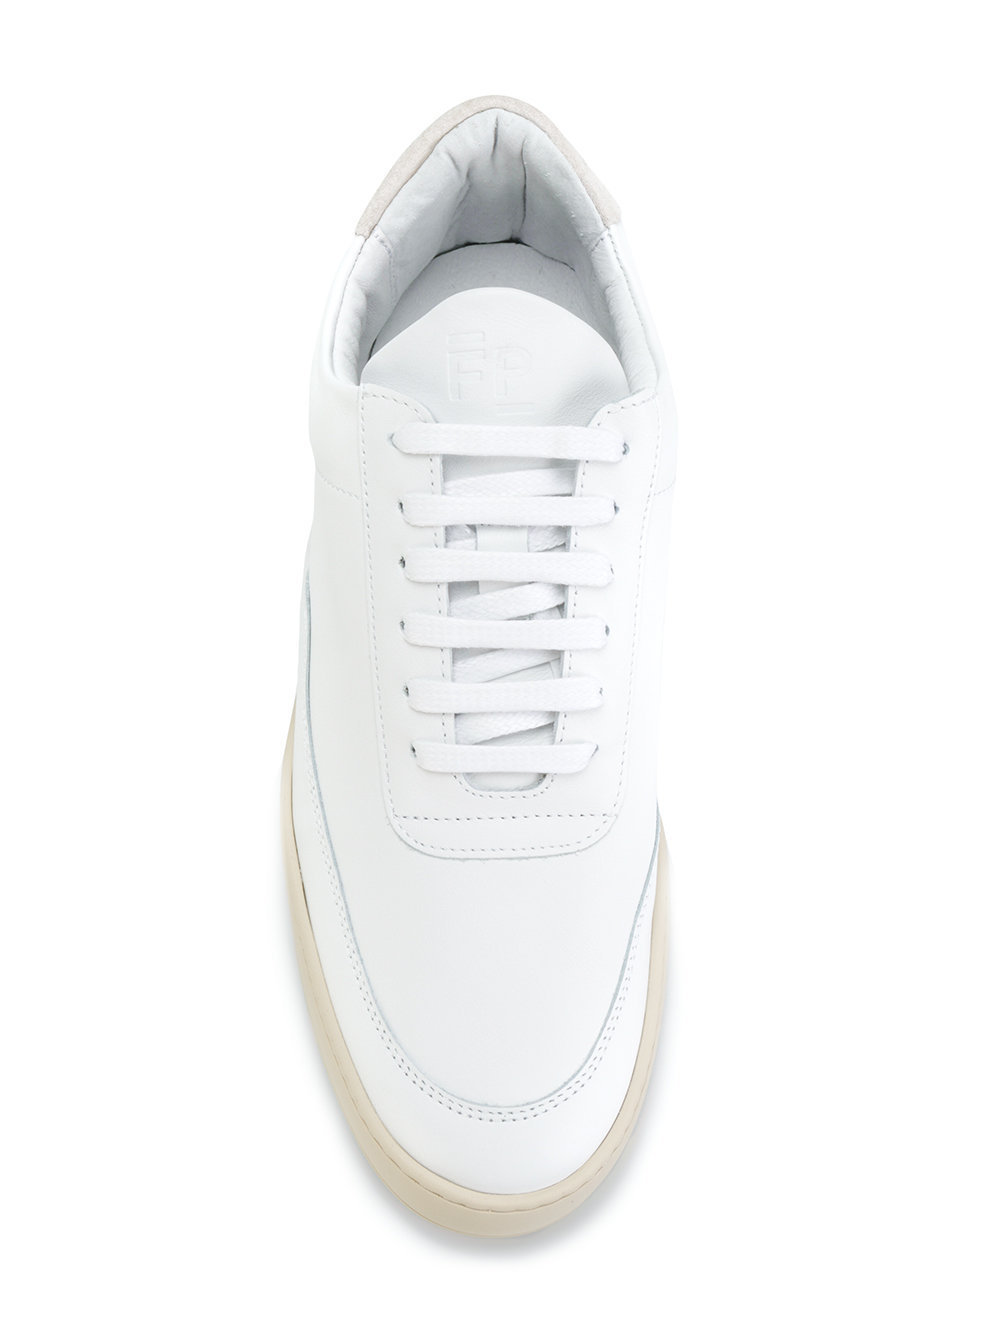 [VIPSALE] Filling Pieces/ レースアップスニーカー☆ホワイト